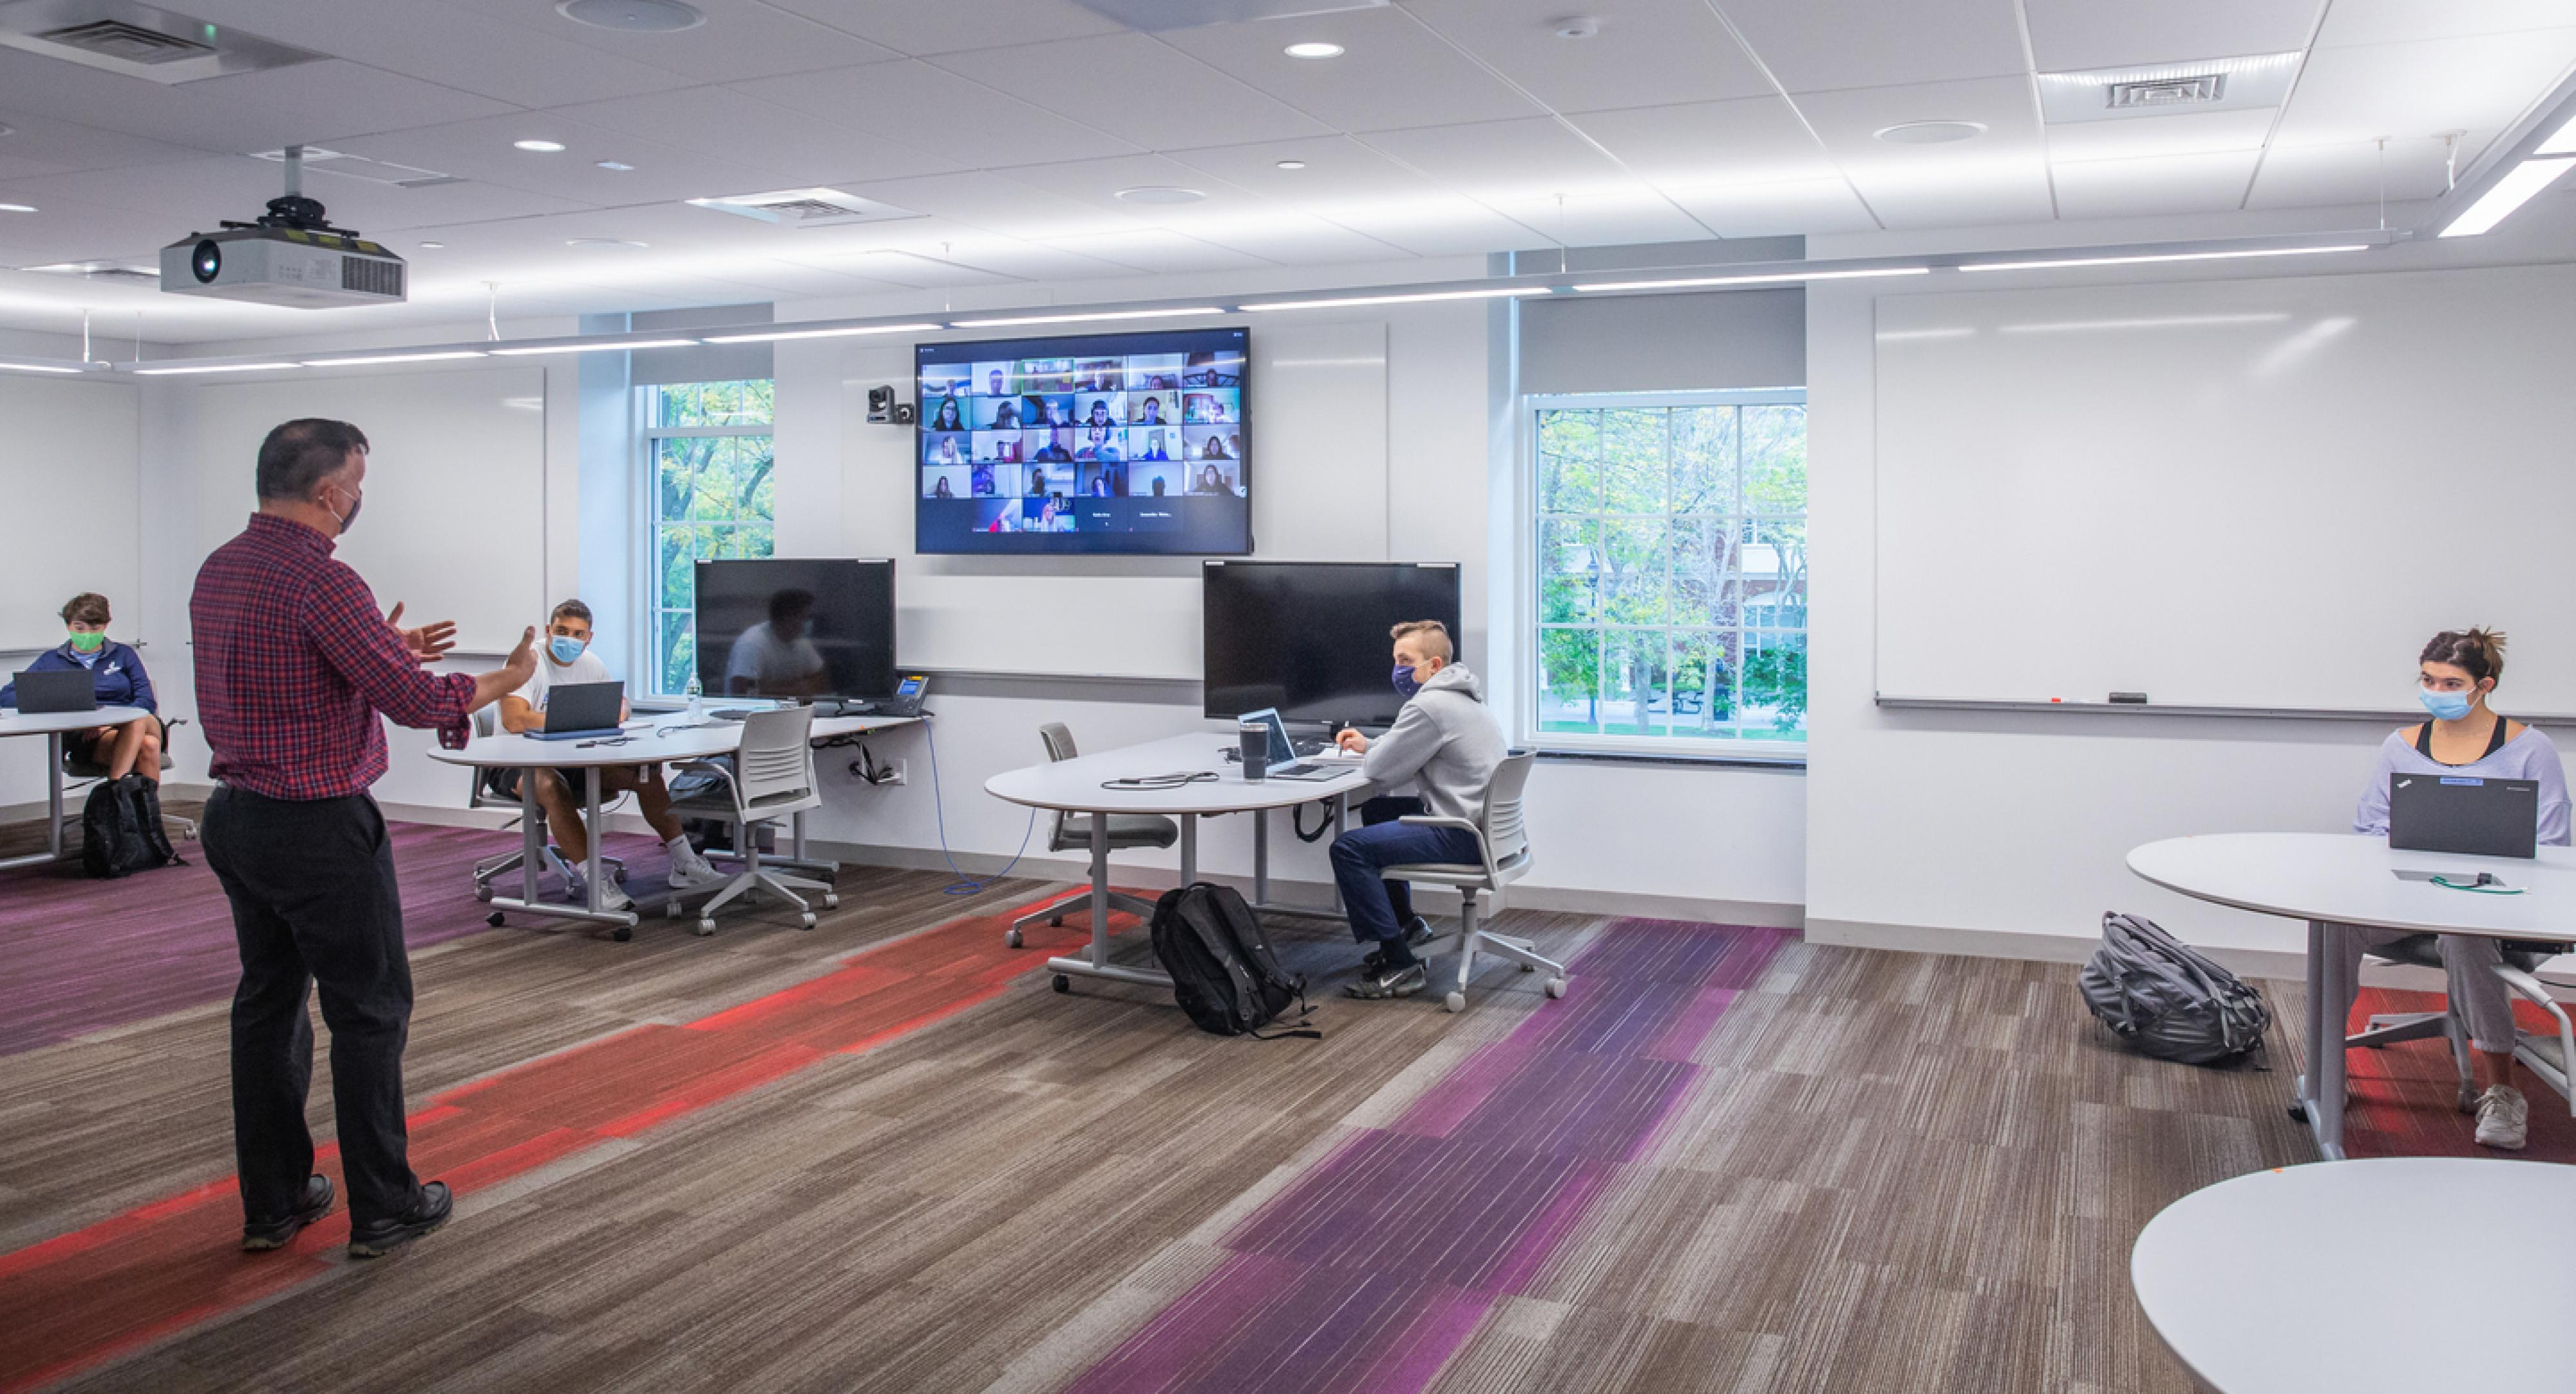 Hybrid classroom with new technology